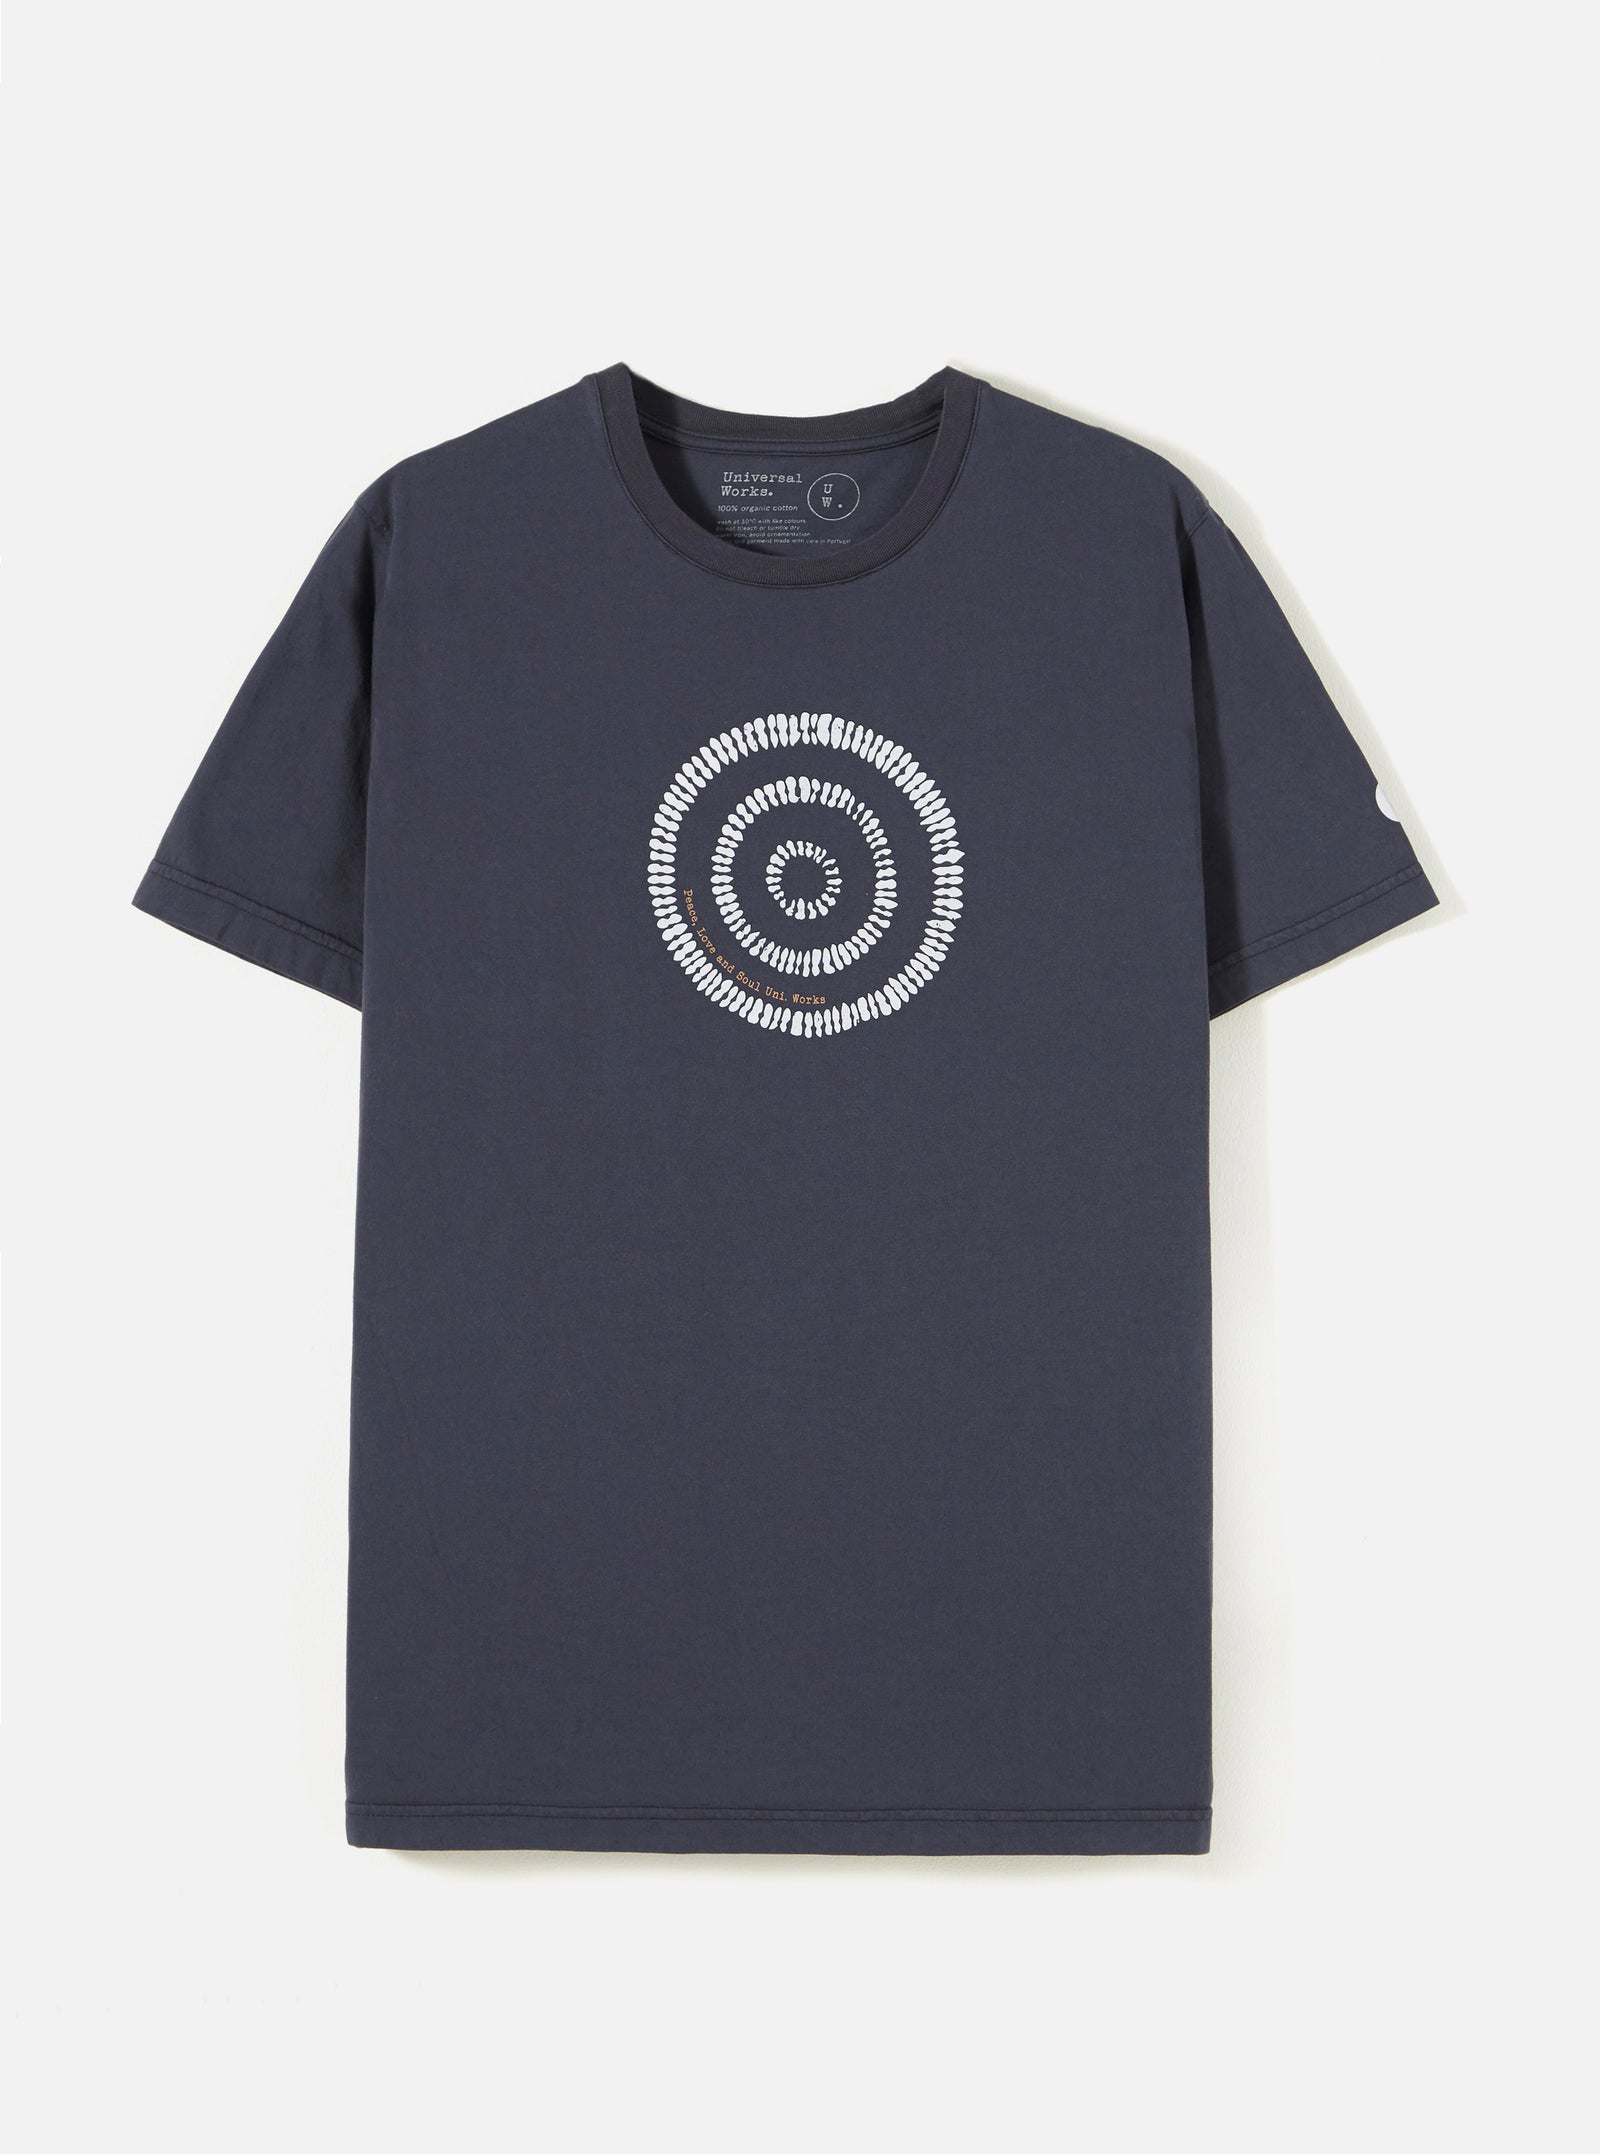 Universal Works Organic Tee in Navy Circle Print Jersey